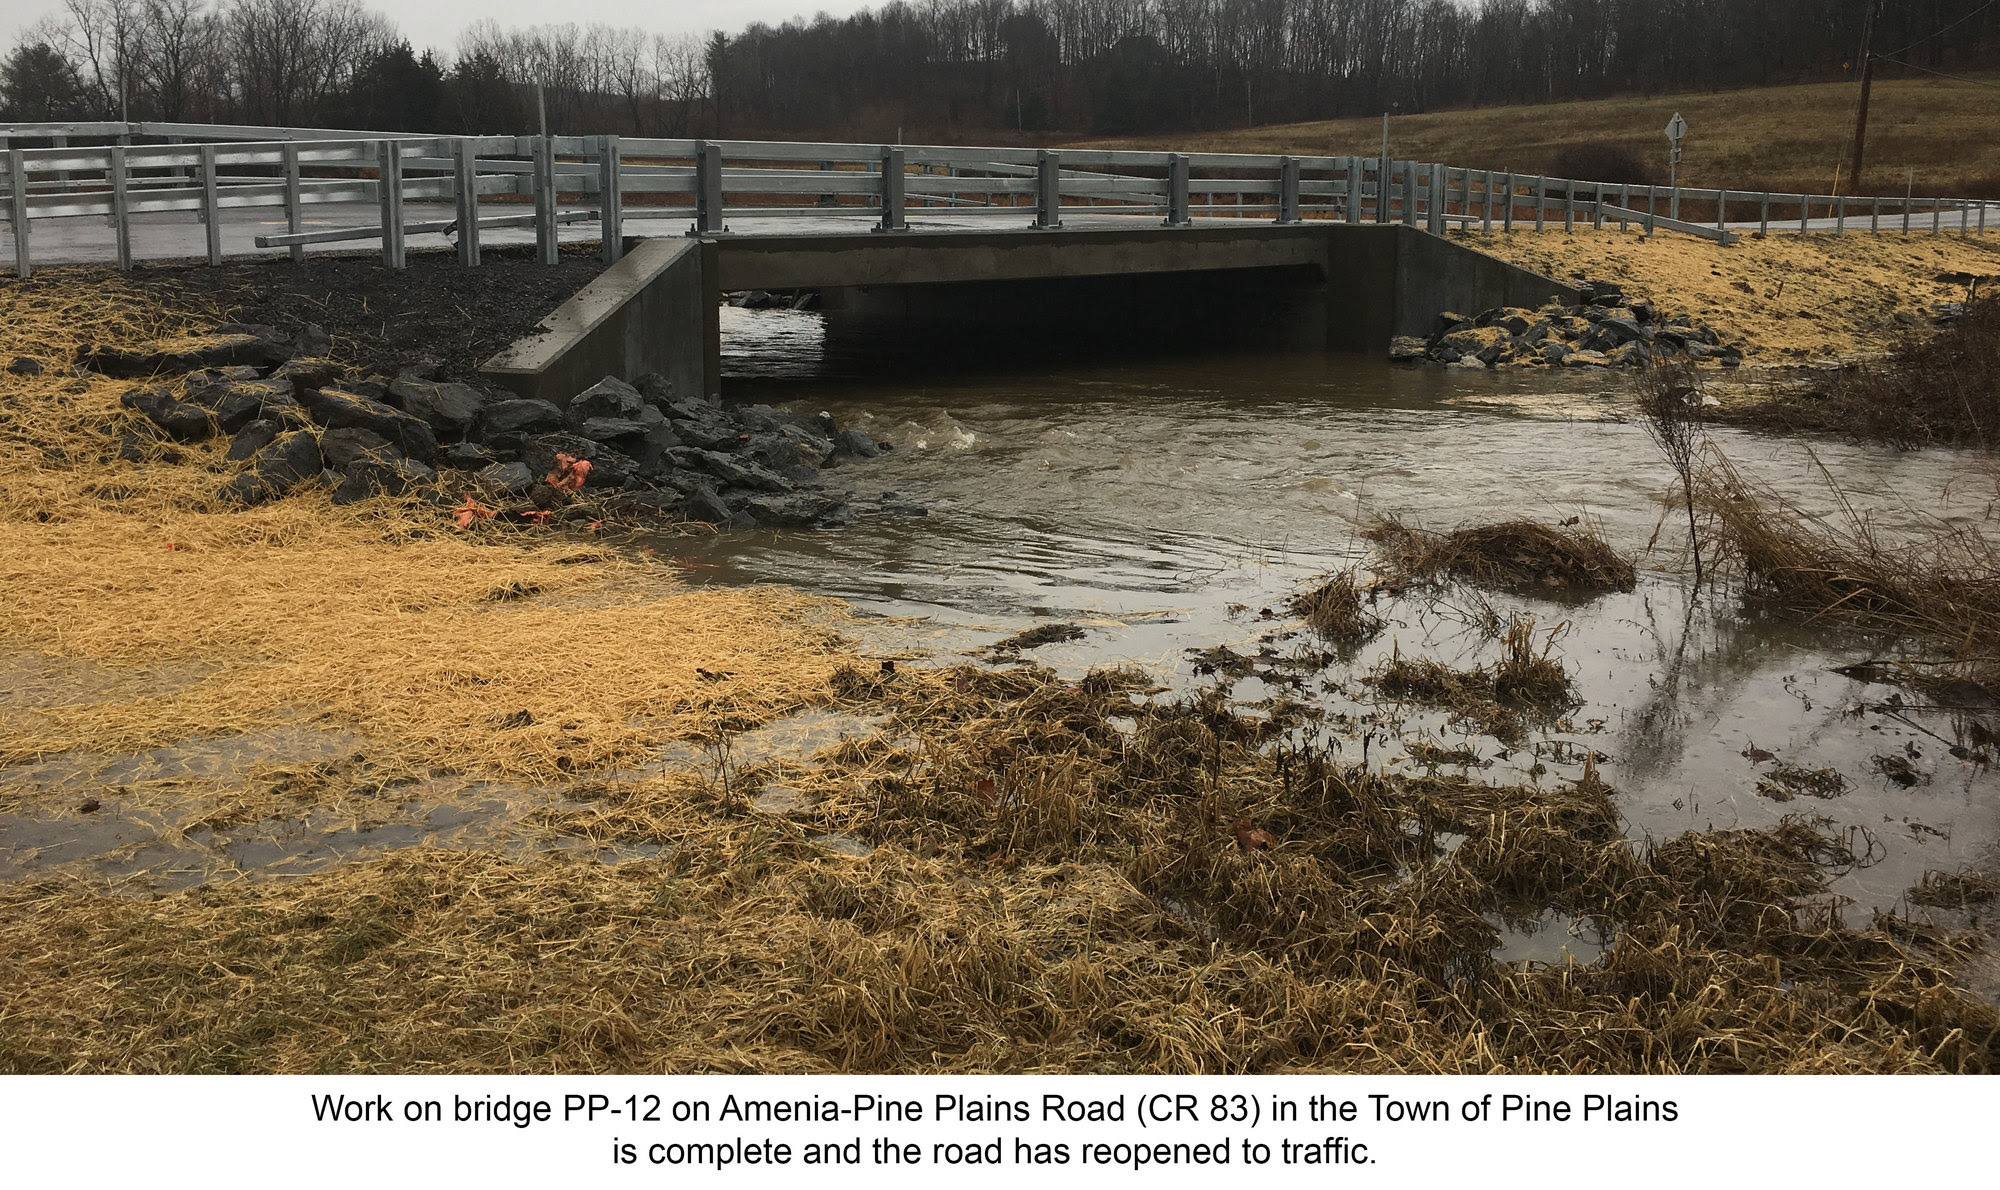 work on bridge PP-12 on Amenia-Pine Plains Road (CR 83) in the Town of Pine Plains is complete and the road has reopened to traffic.